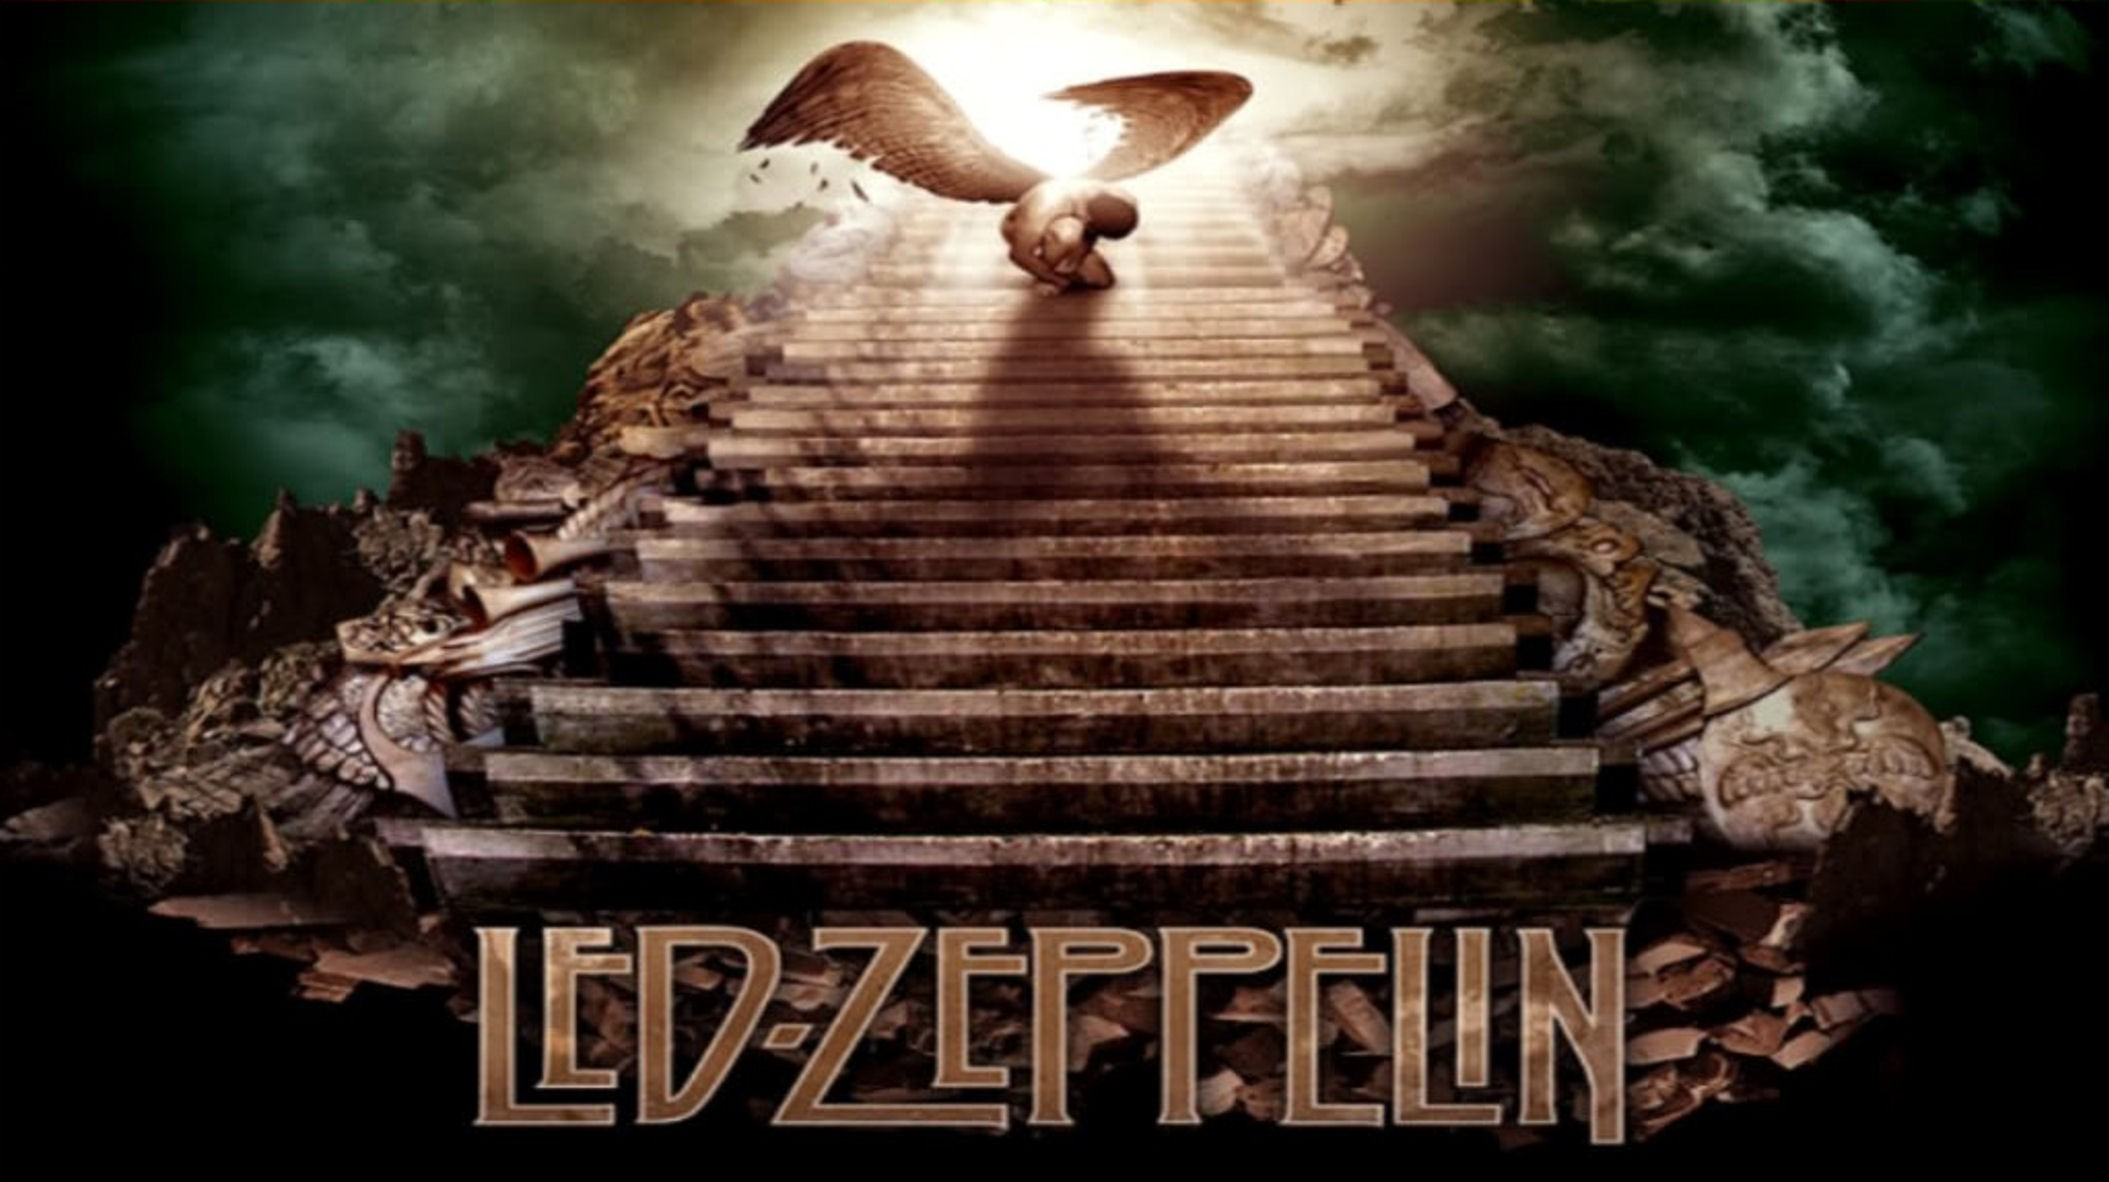 Free download led zeppelin wallpaper id:401635 full hd for pc.